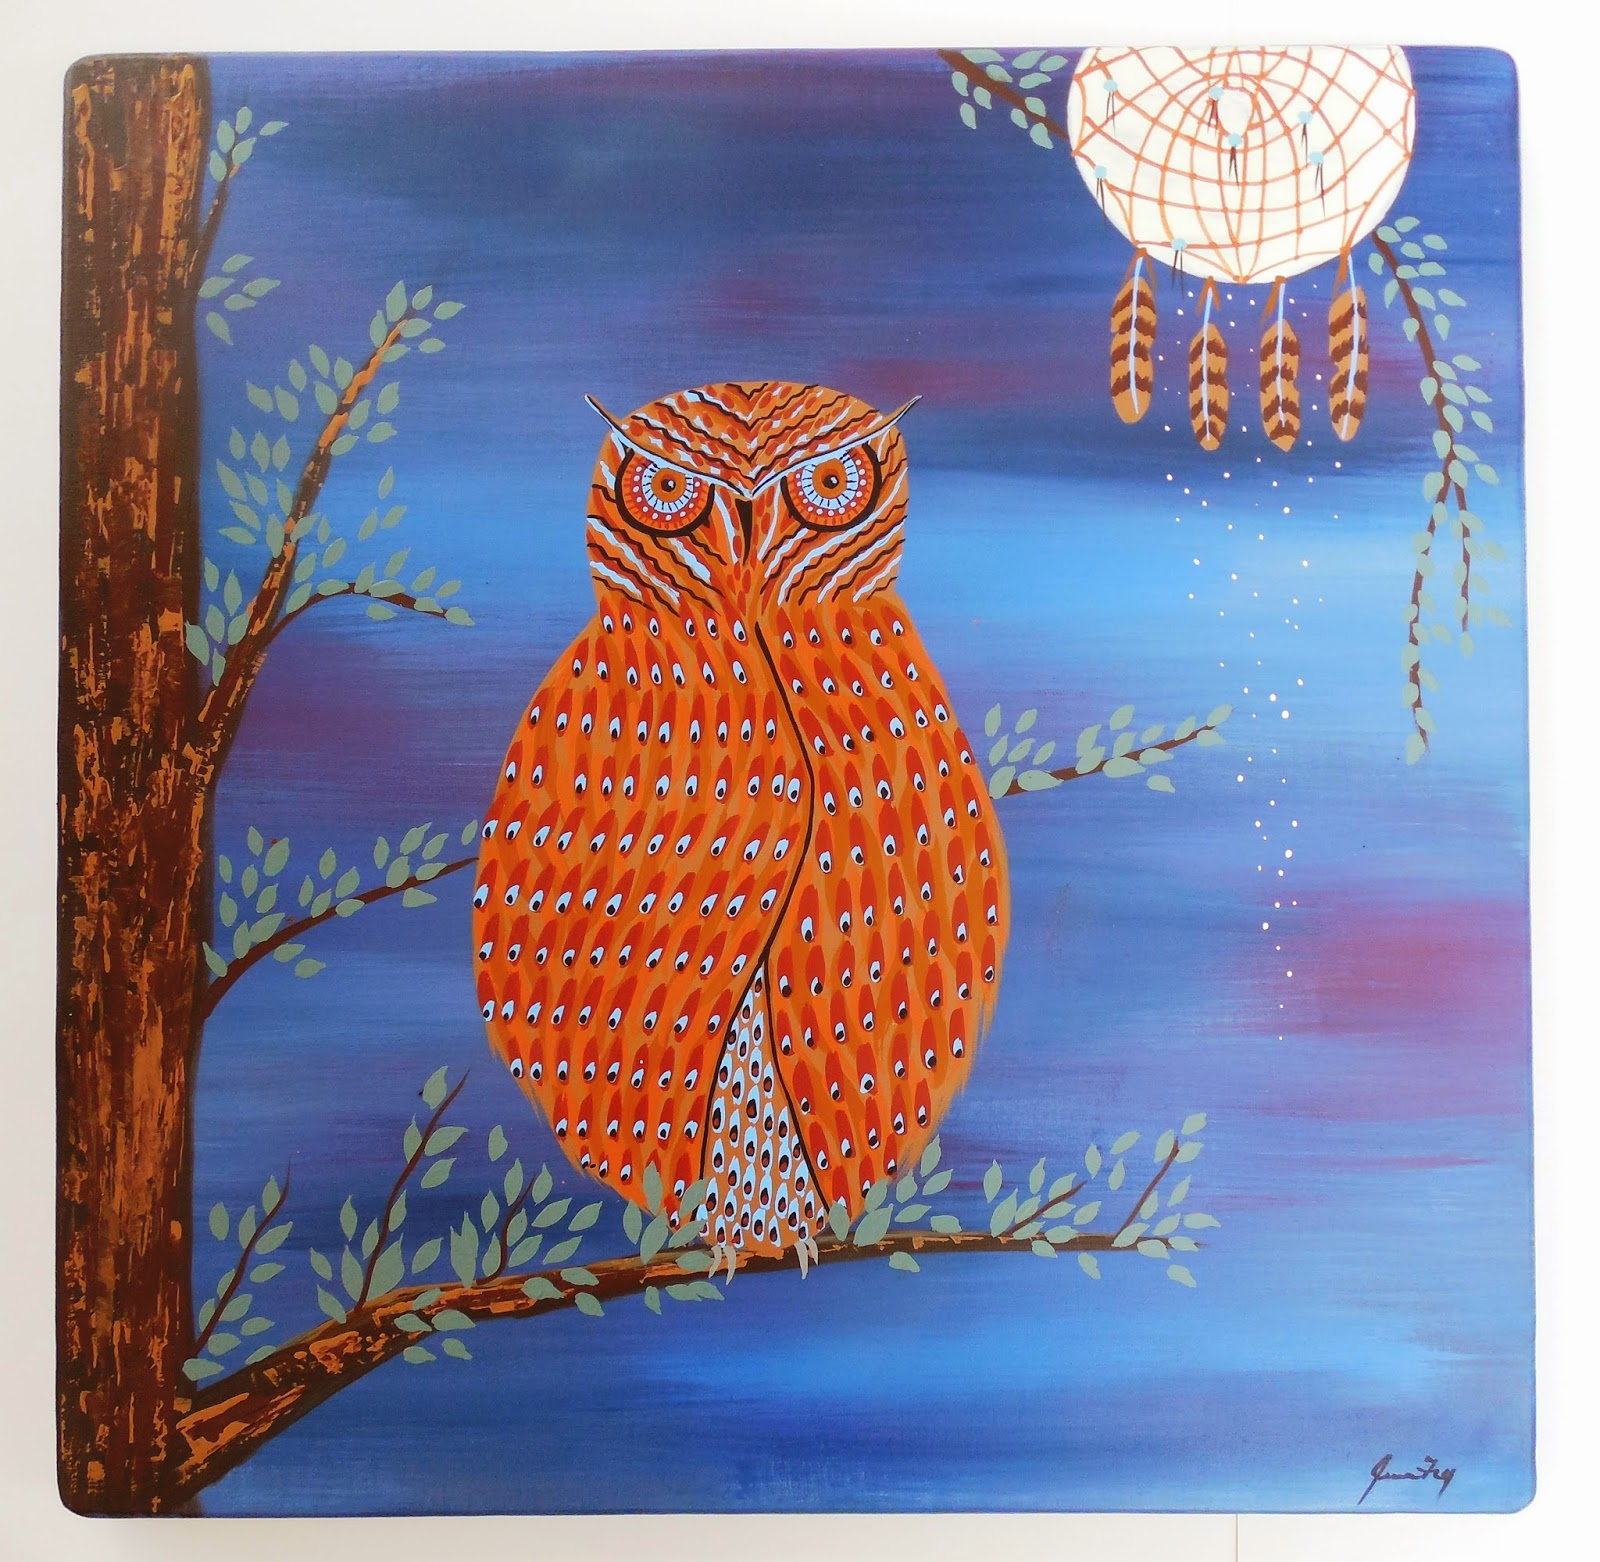 Conscious art studios the great horned owl symbolic meaning wednesday may 21 2014 biocorpaavc